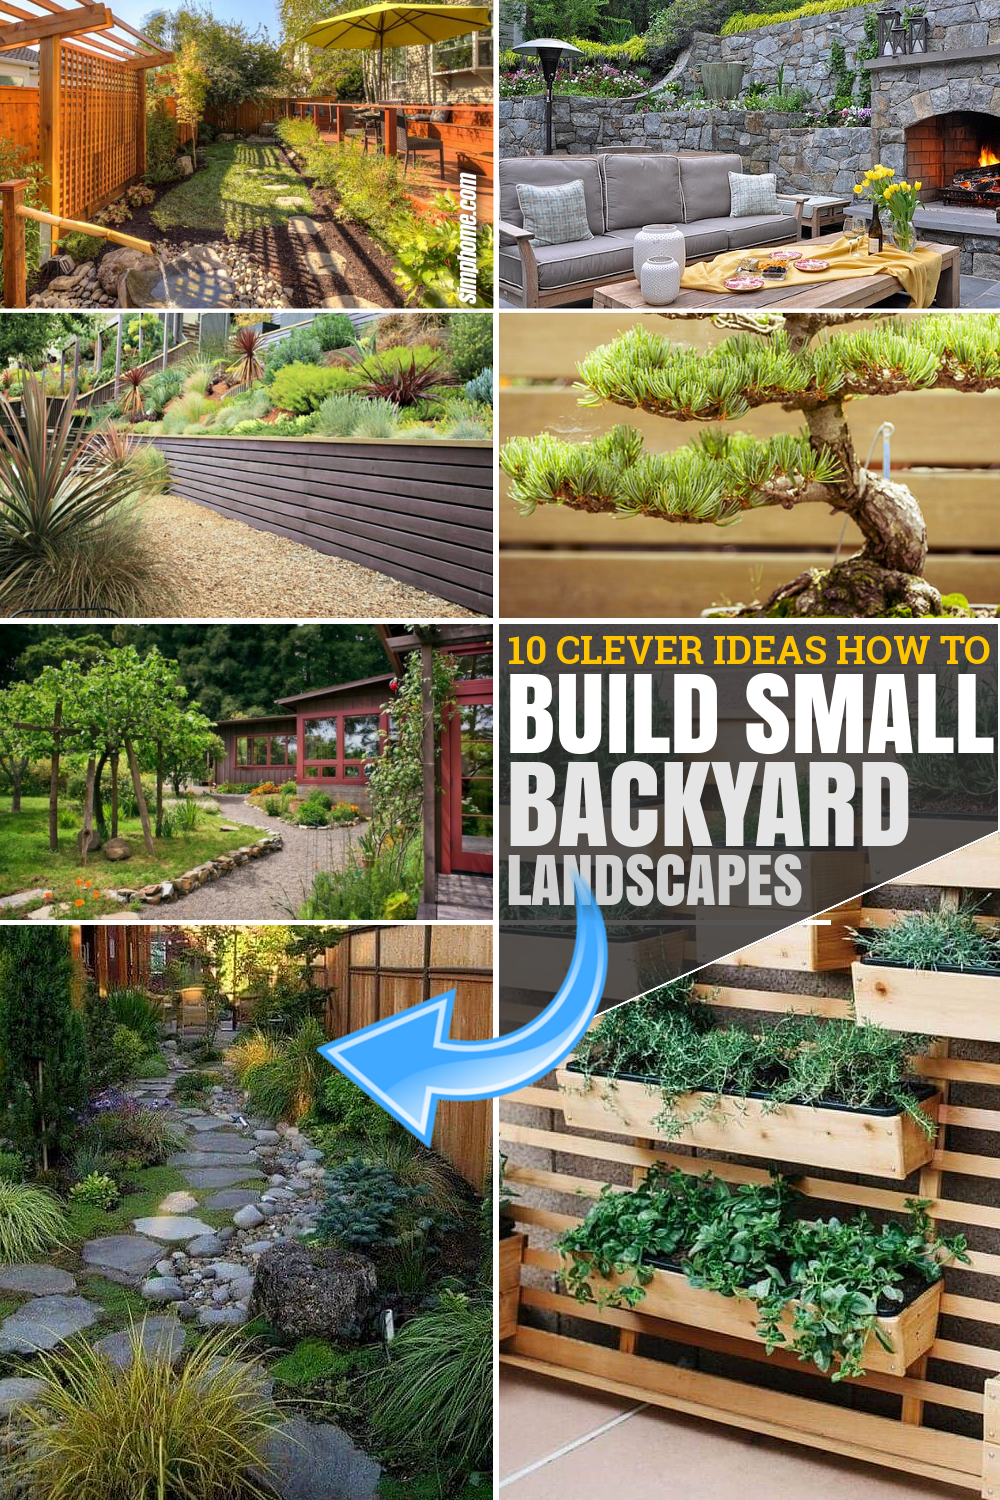 10 Clever Ideas How to Build Small Backyard Landscape By SIMPHOME.COM Pinterest Featured Image